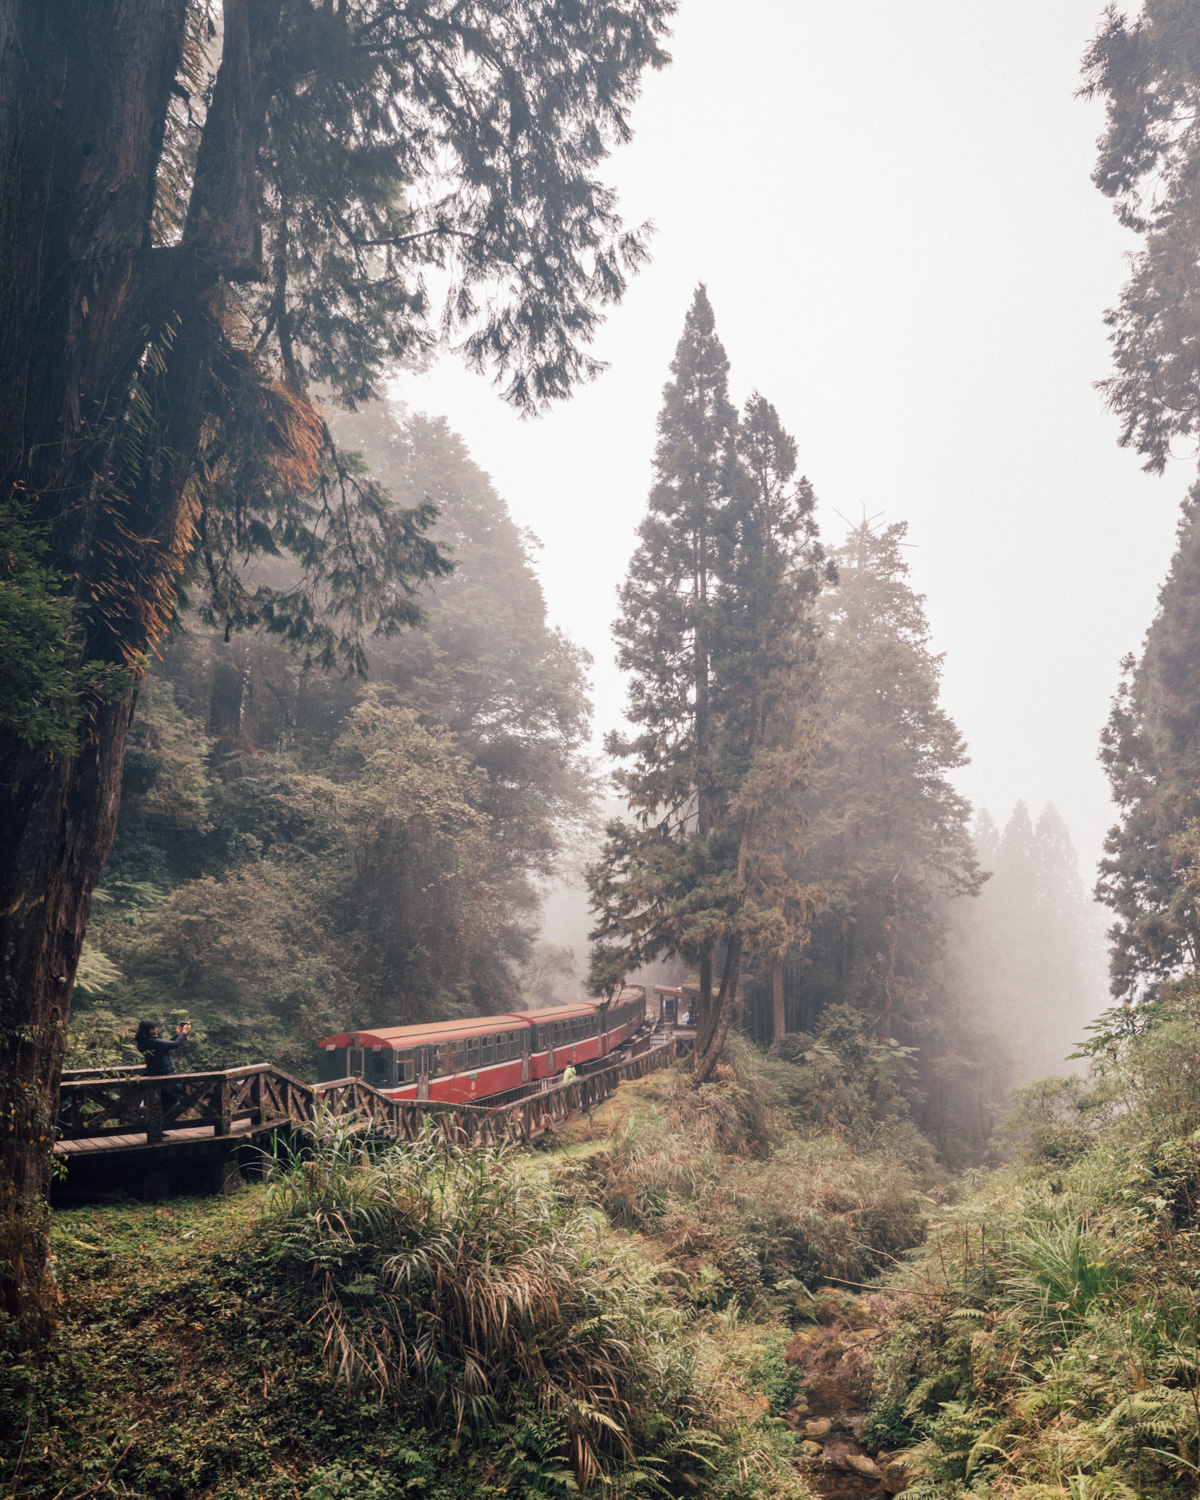 The forest train in Alishan